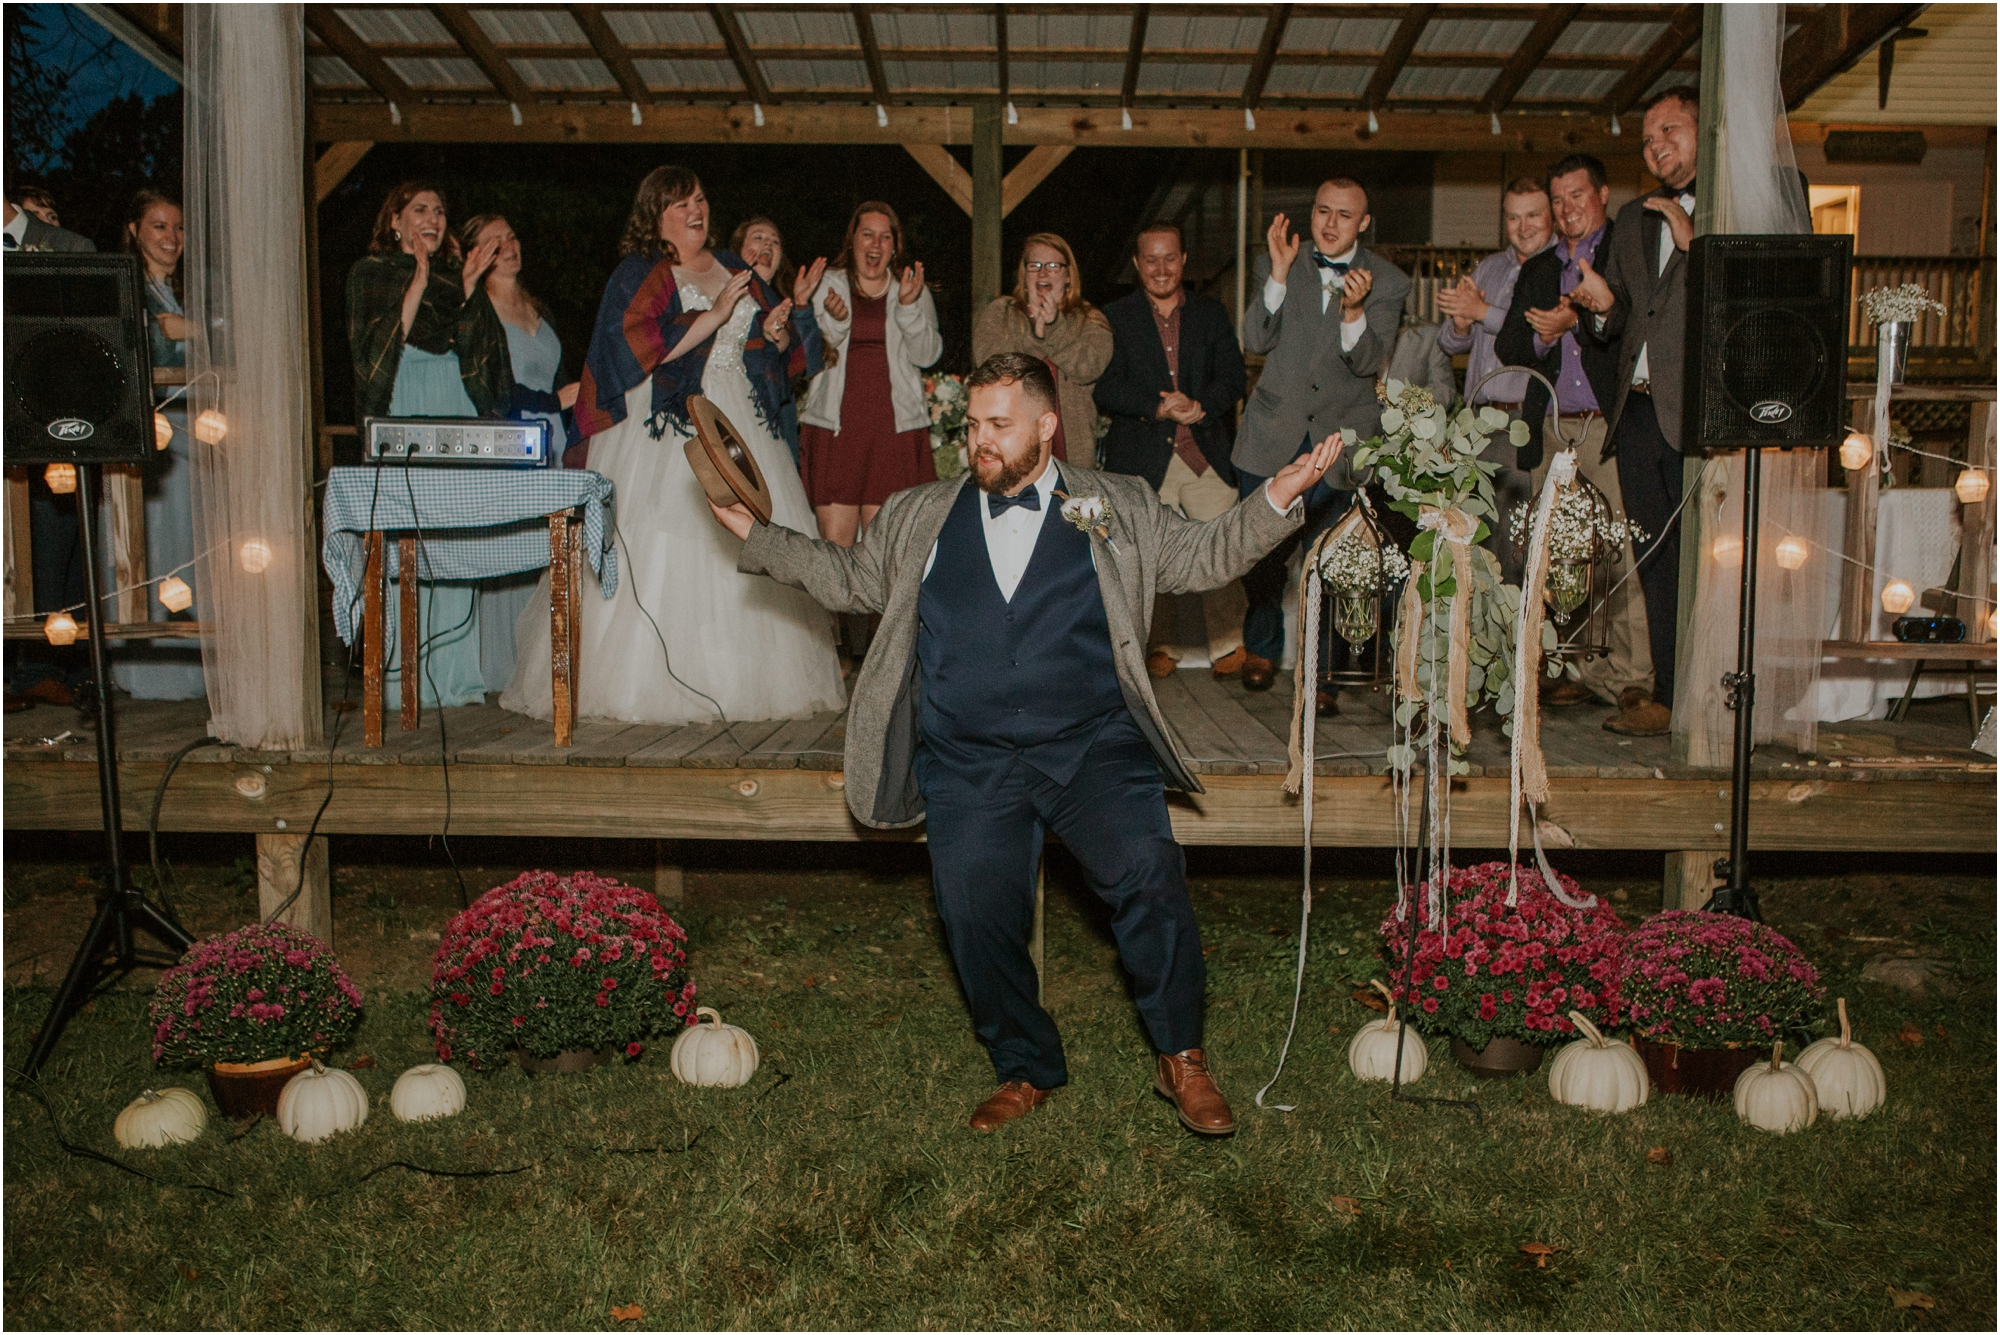 caryville-robbins-middle-tennessee-intimate-cozy-fall-navy-rustic-backyard-wedding_0138.jpg